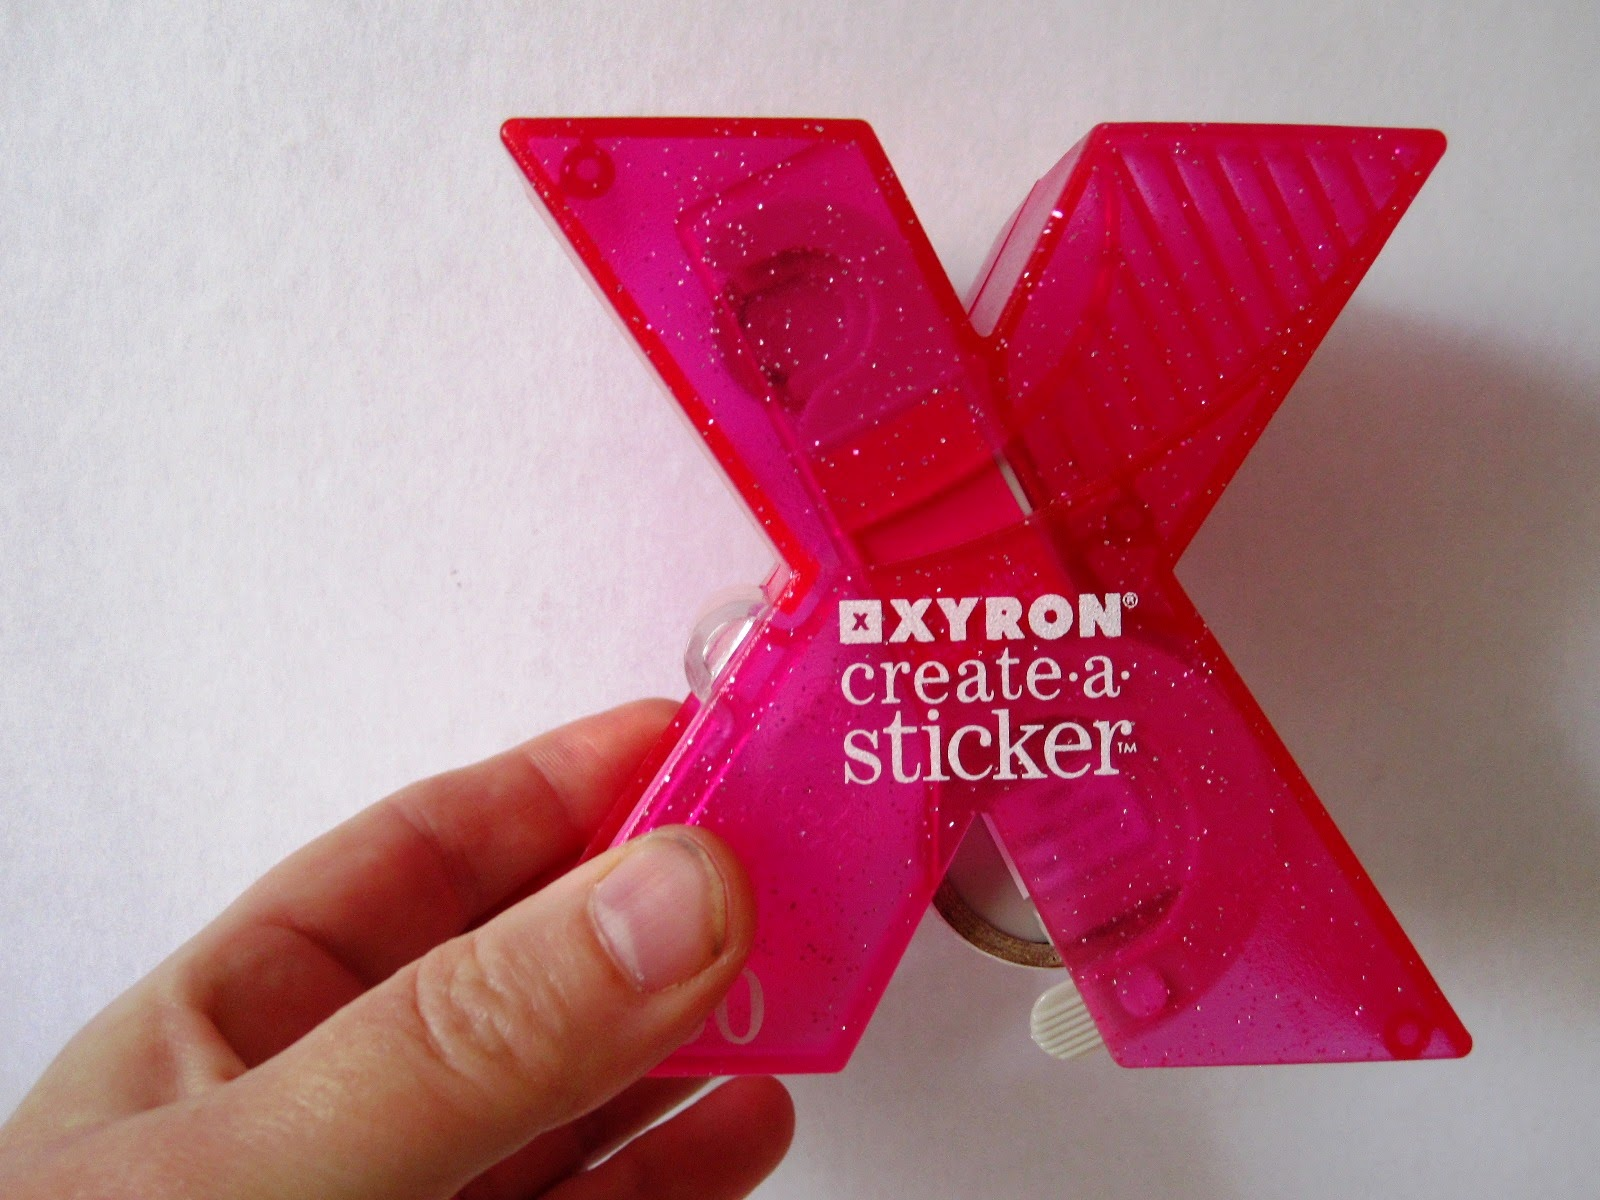 Xyron 150 Create-a-Sticker machine.